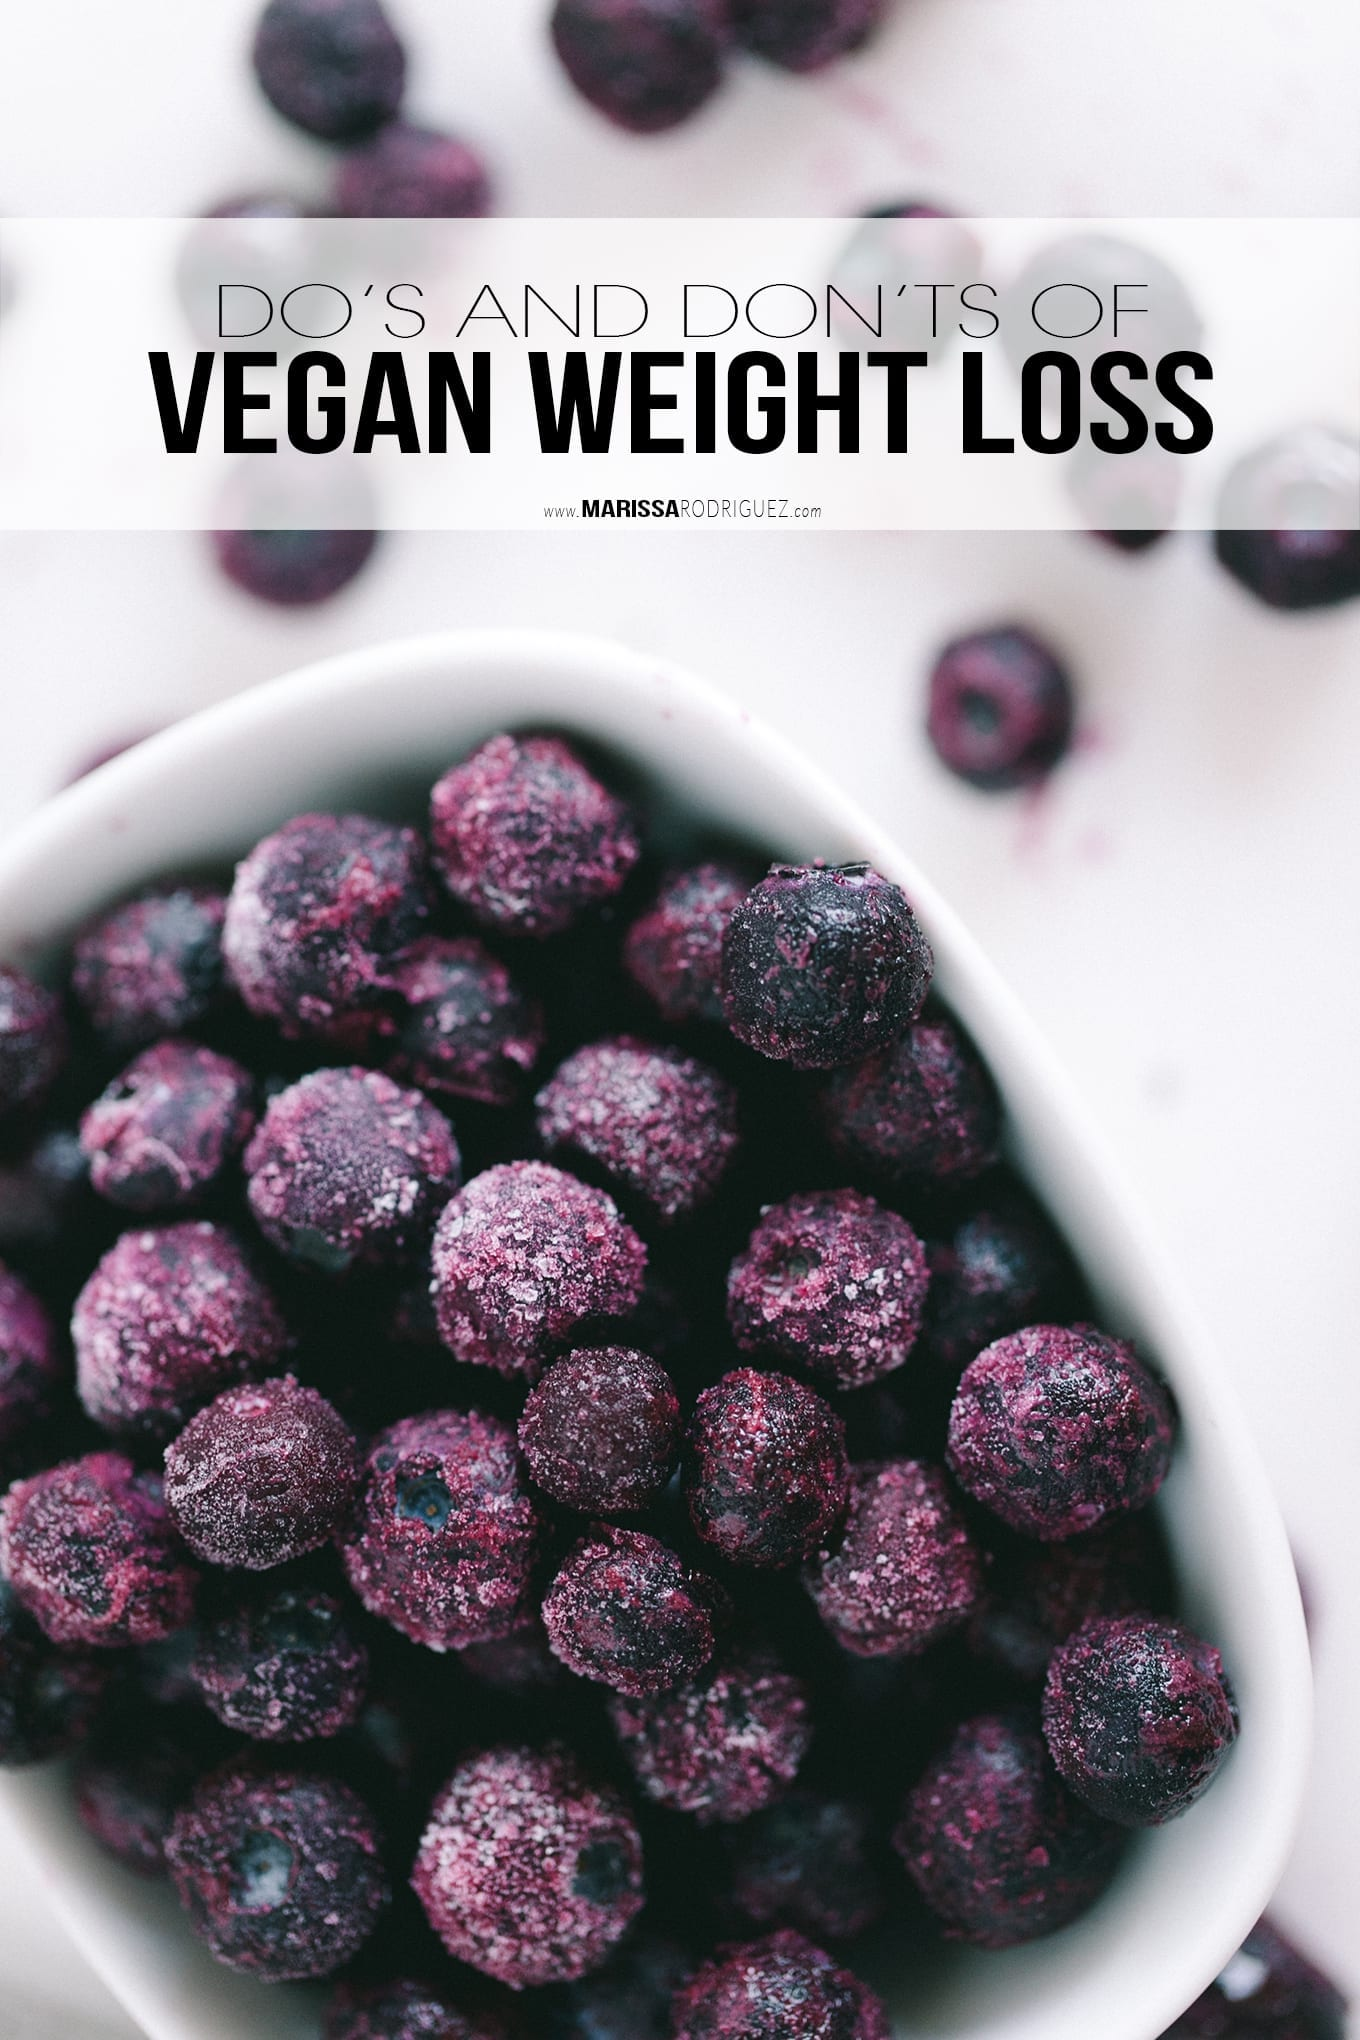 dos and donts of vegan weight loss-plant based